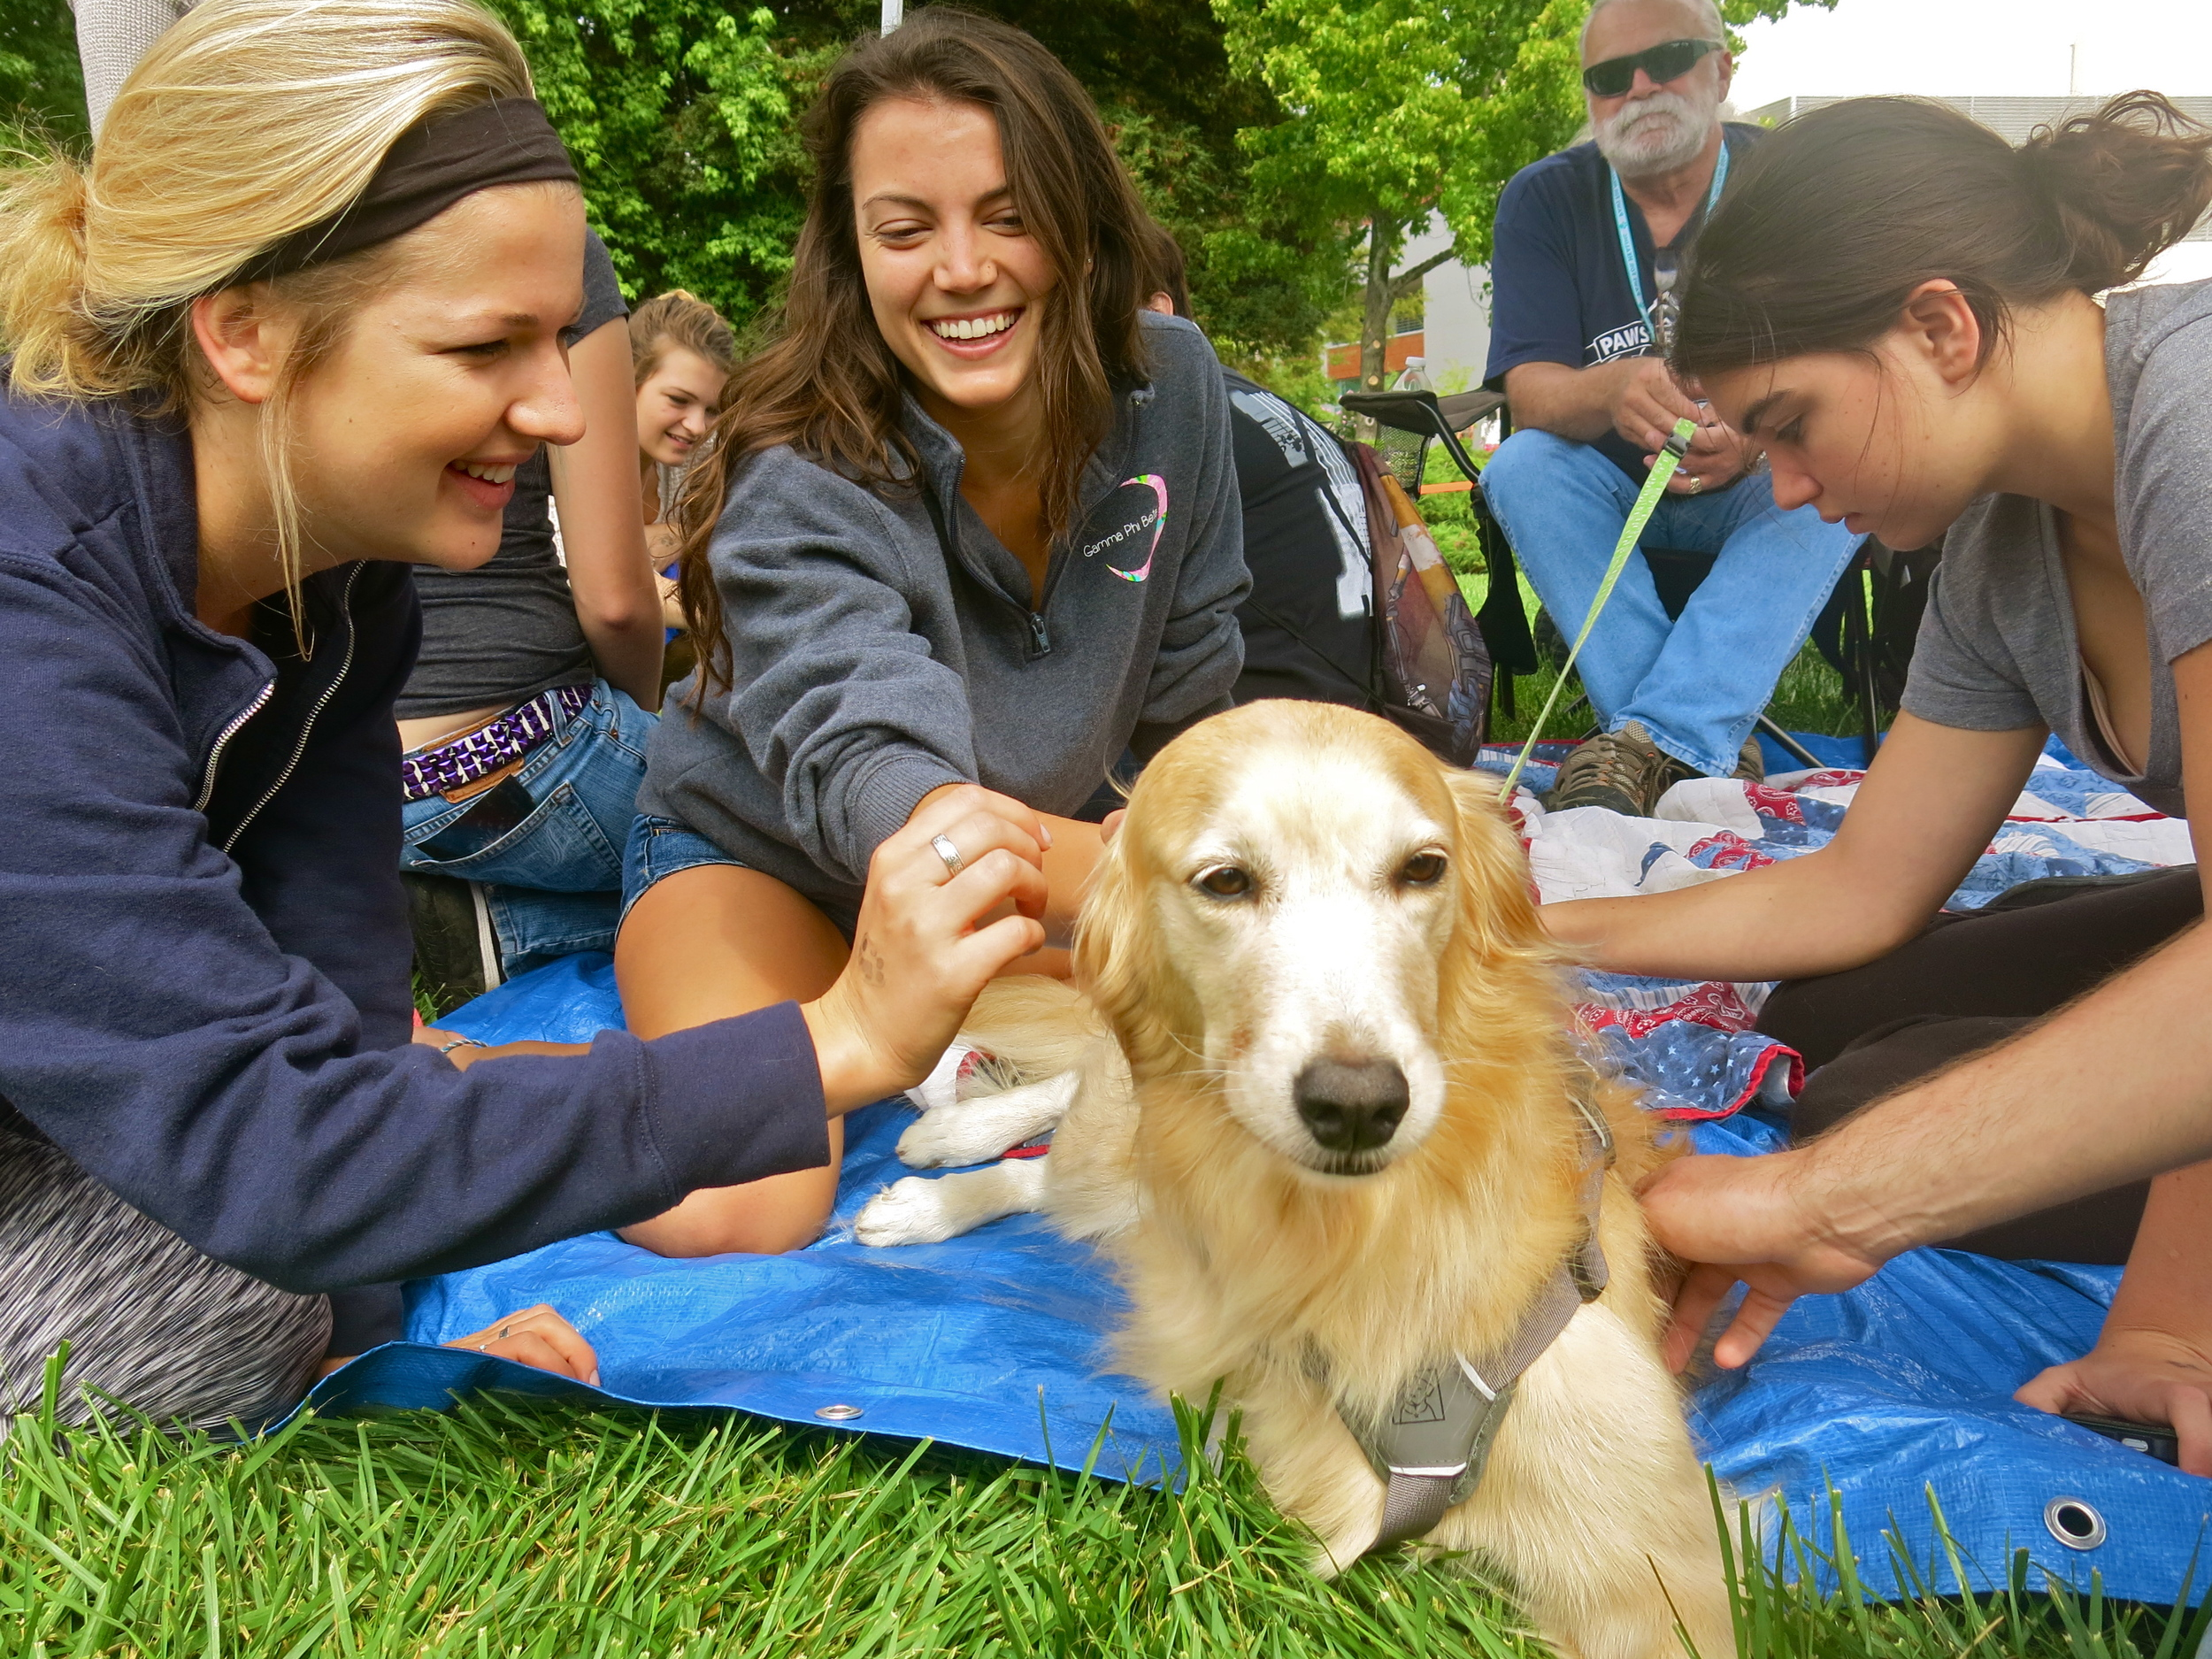 STAR // Maud Busson   Students flocked to play with all different breeds of dogs where they could escape from the stresses of everyday life.